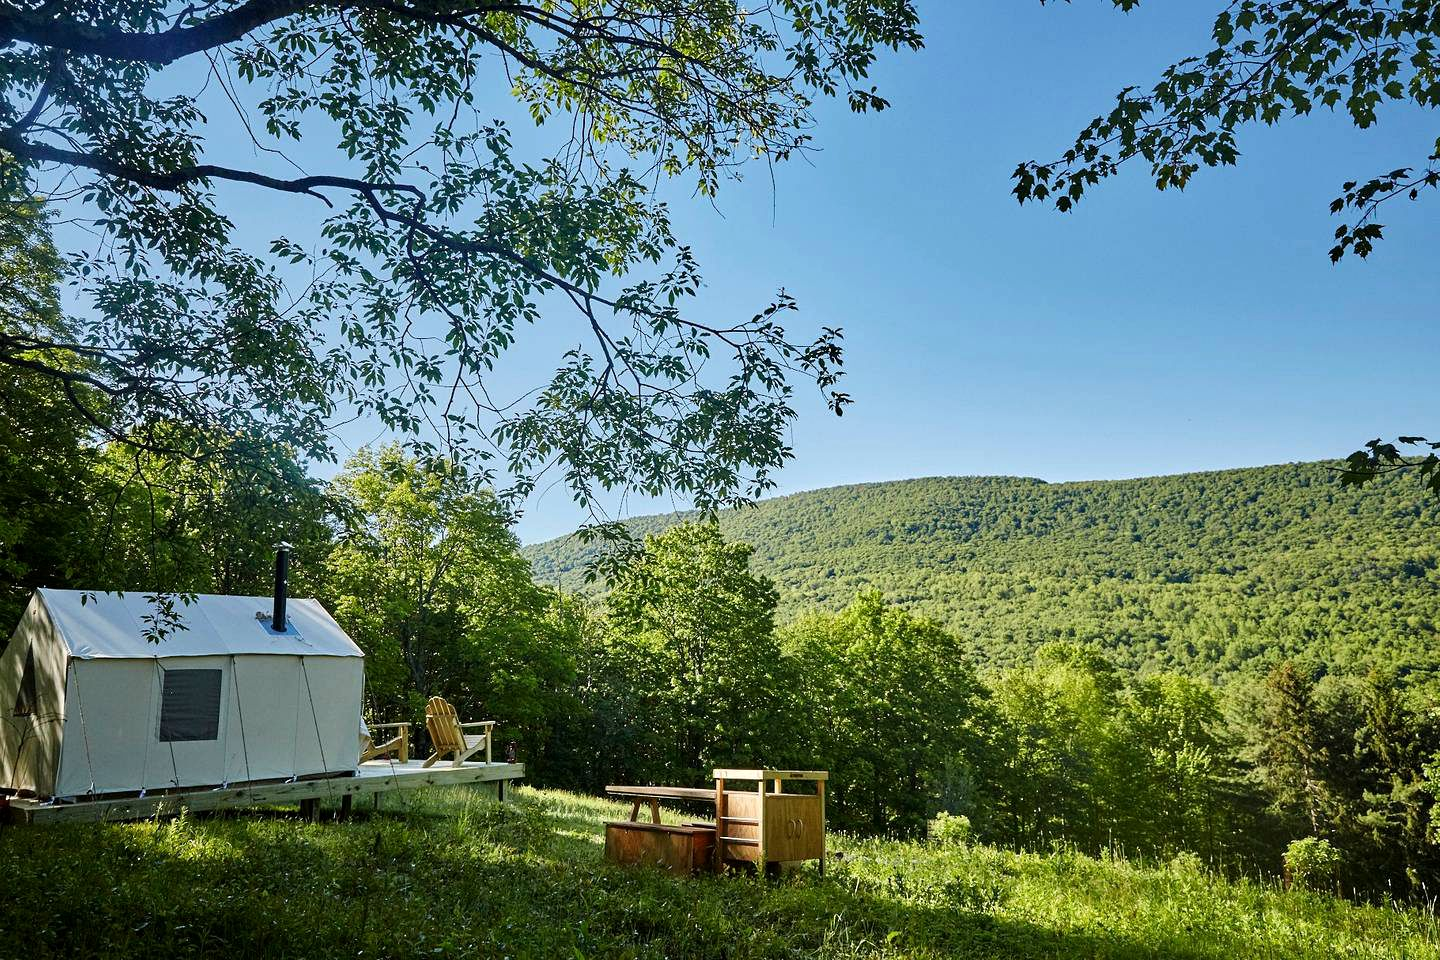 Tented Cabins (Roxbury, New York, United States)